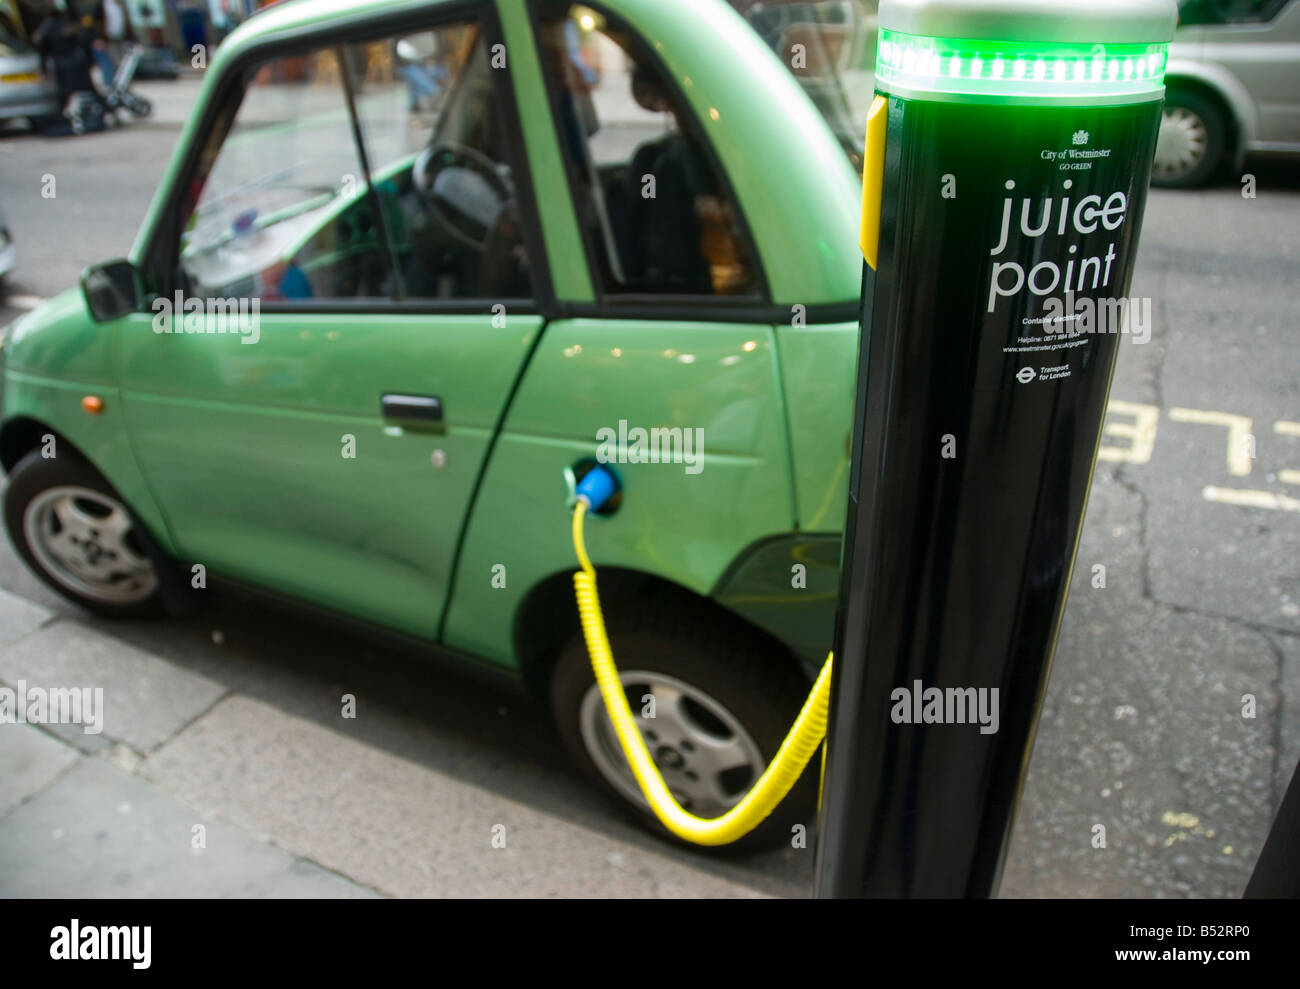 A G Wiz electric car charging from a City of Westminster Juice point in central London Stock Photo